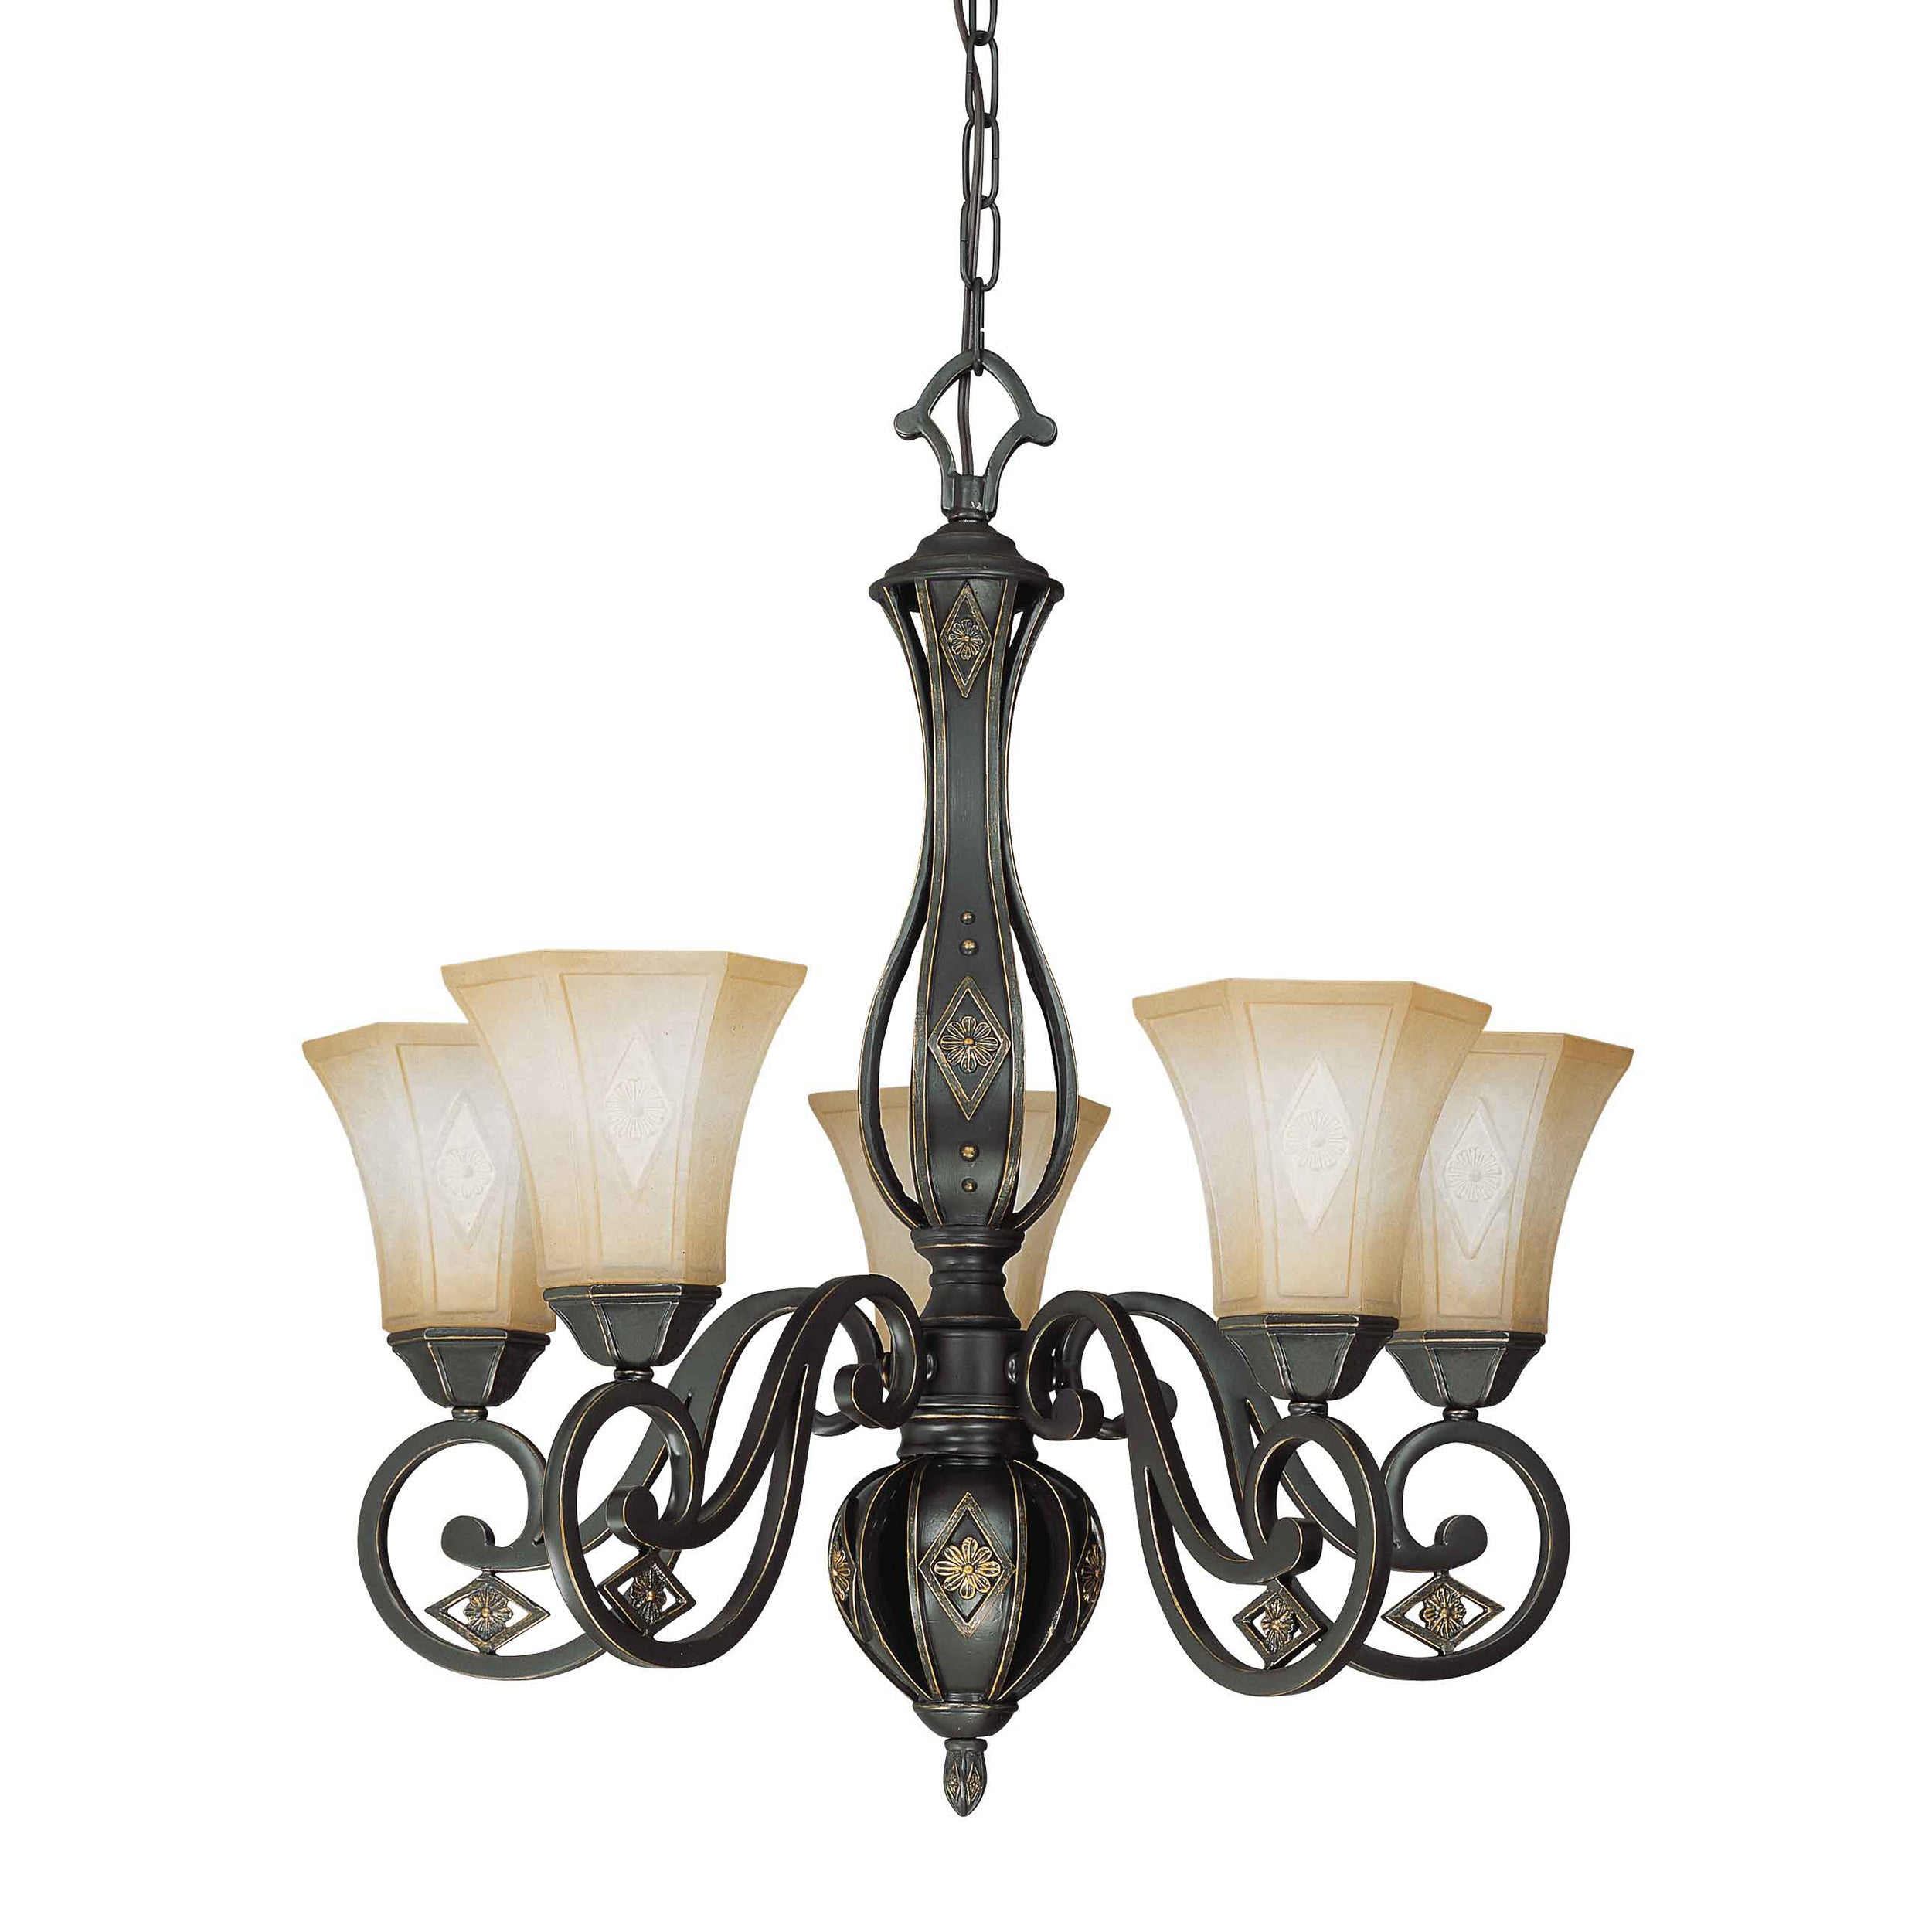 Brussells 5 Light 2 Tier Chandelier Belgium Bronze with Fresco Glass